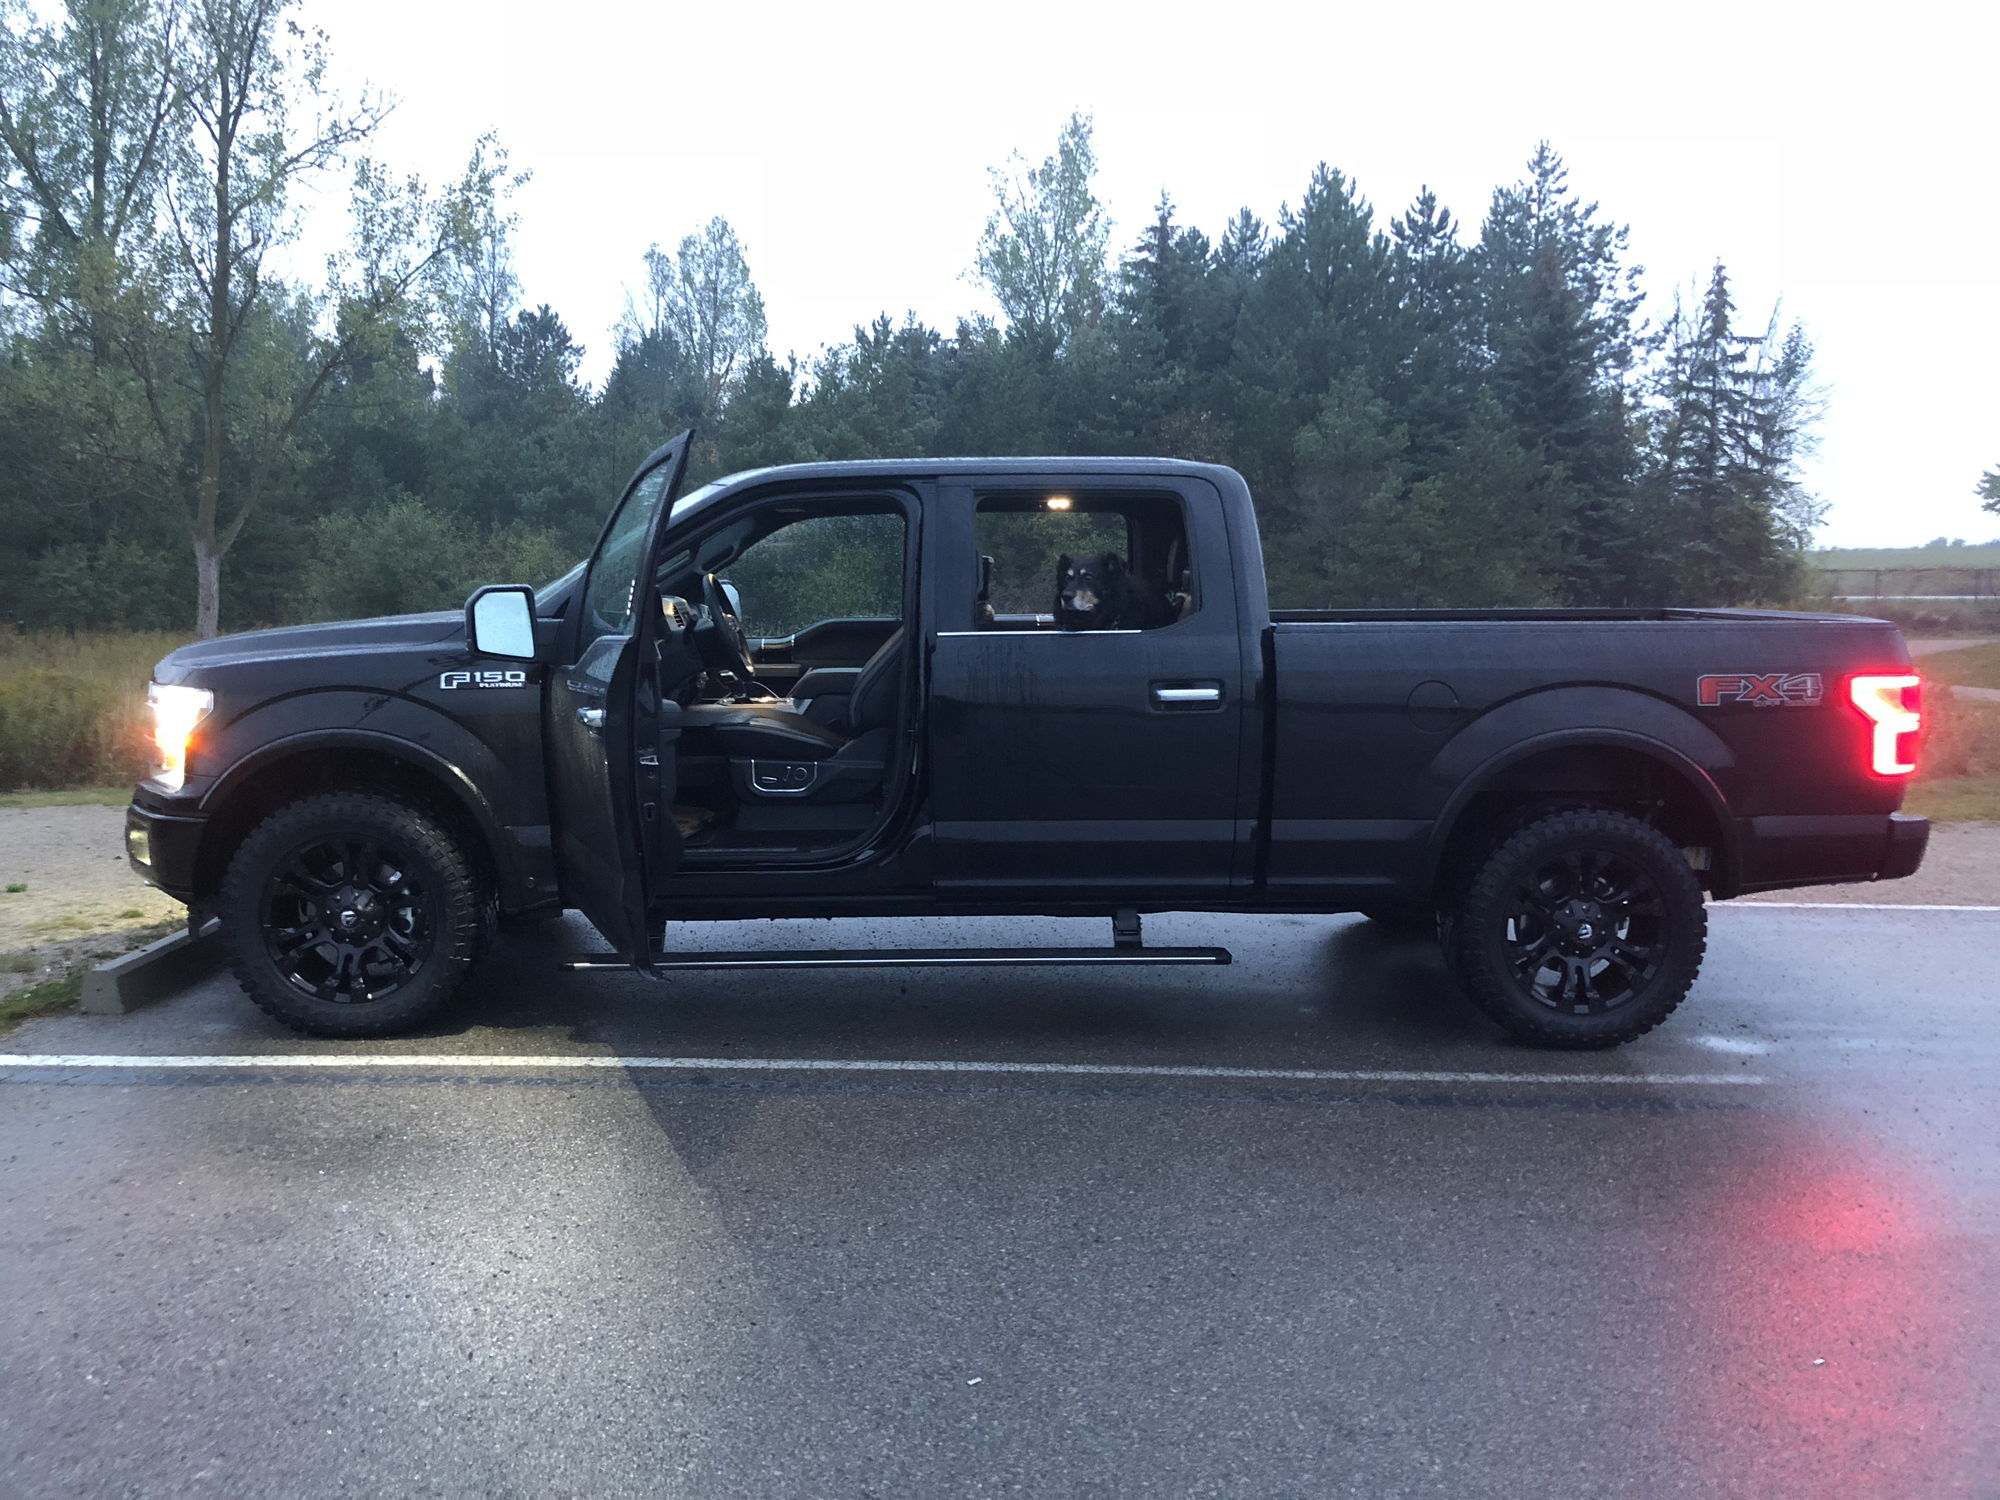 2018 f150 platinum new wheels and tires ford f150 forum community of ford truck fans. Black Bedroom Furniture Sets. Home Design Ideas